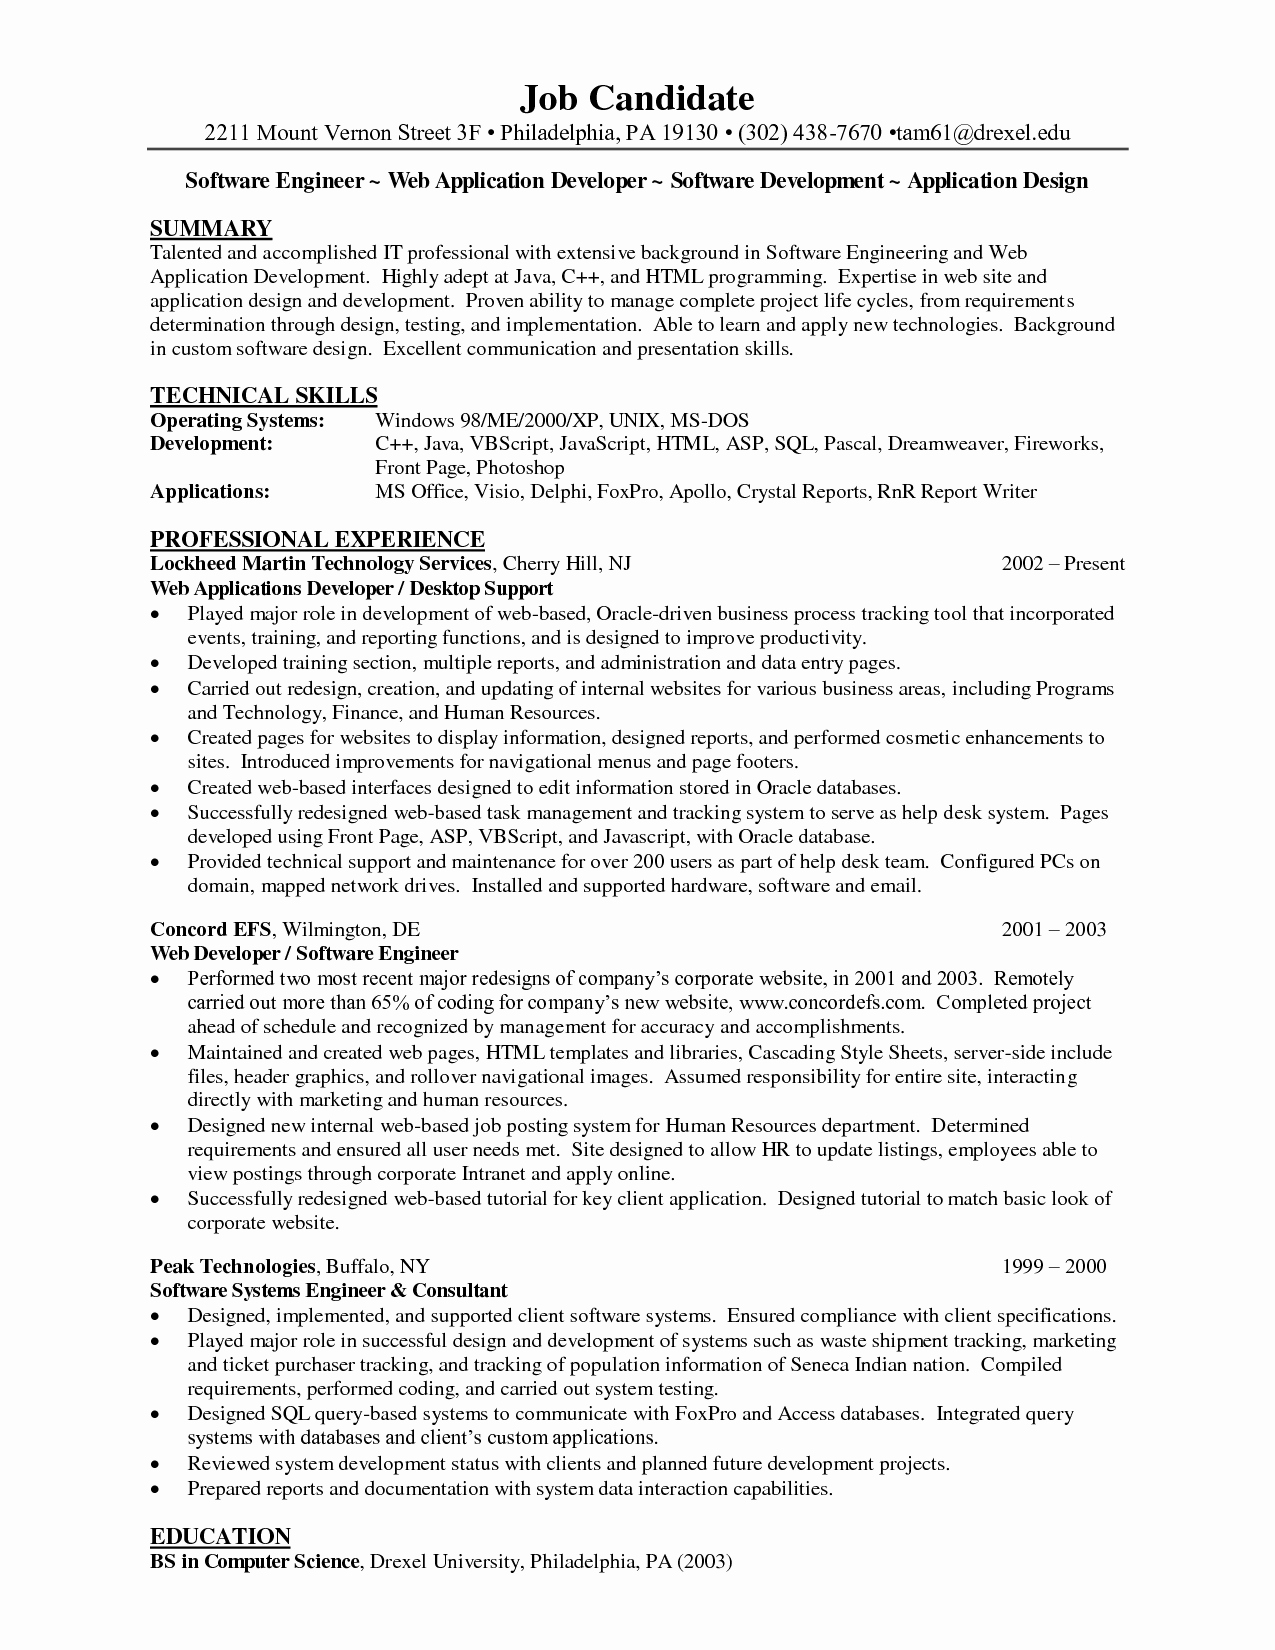 Upwork Proposal Template Awesome Upwork Cover Letter Template ...